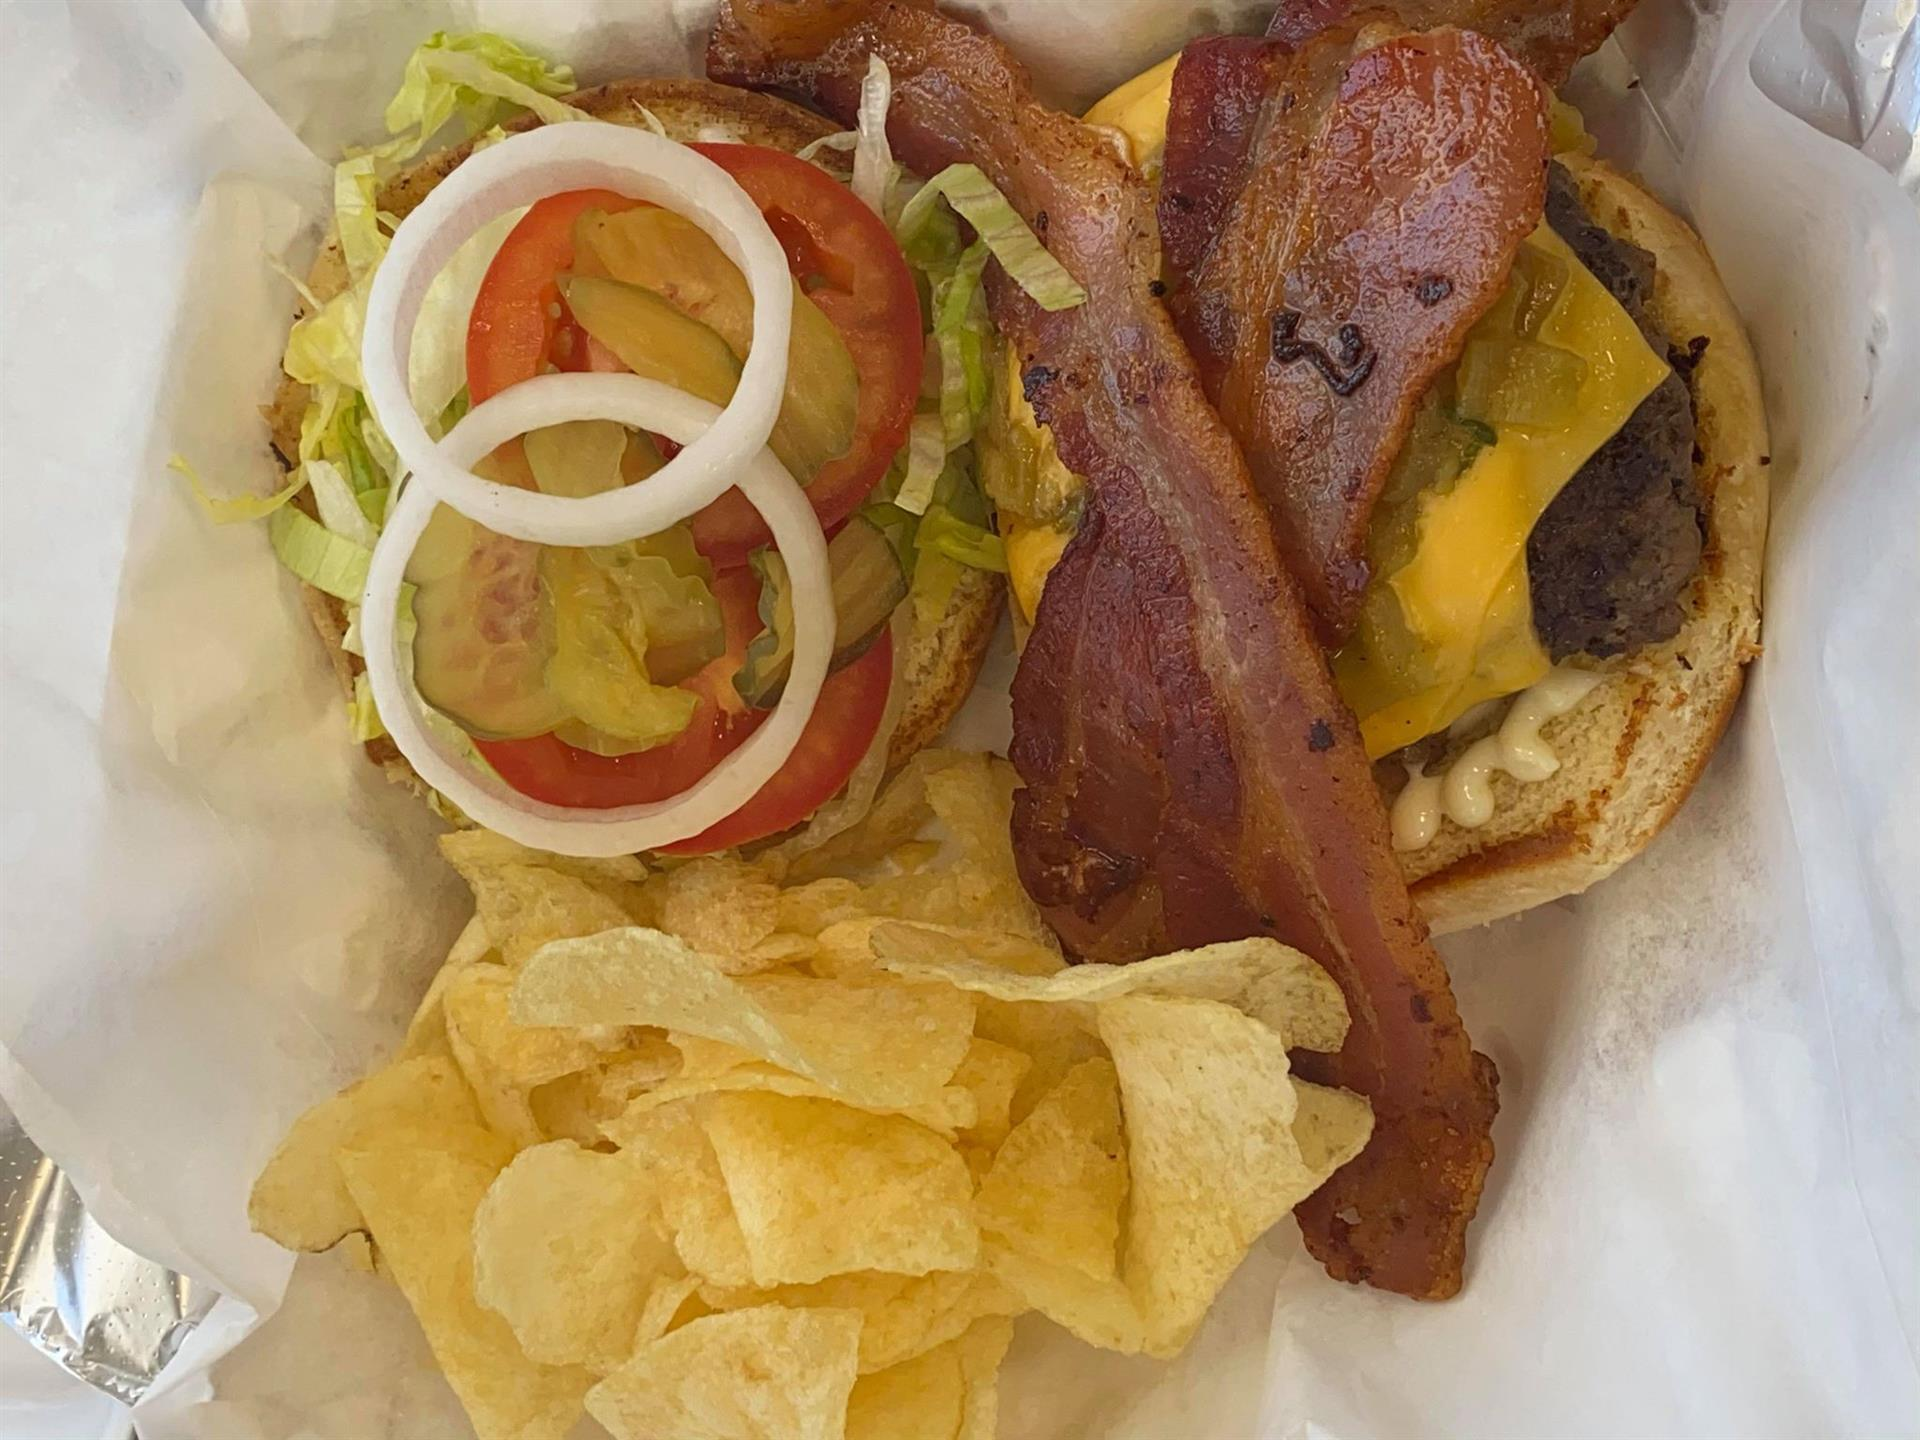 bacon cheeseburger with chips